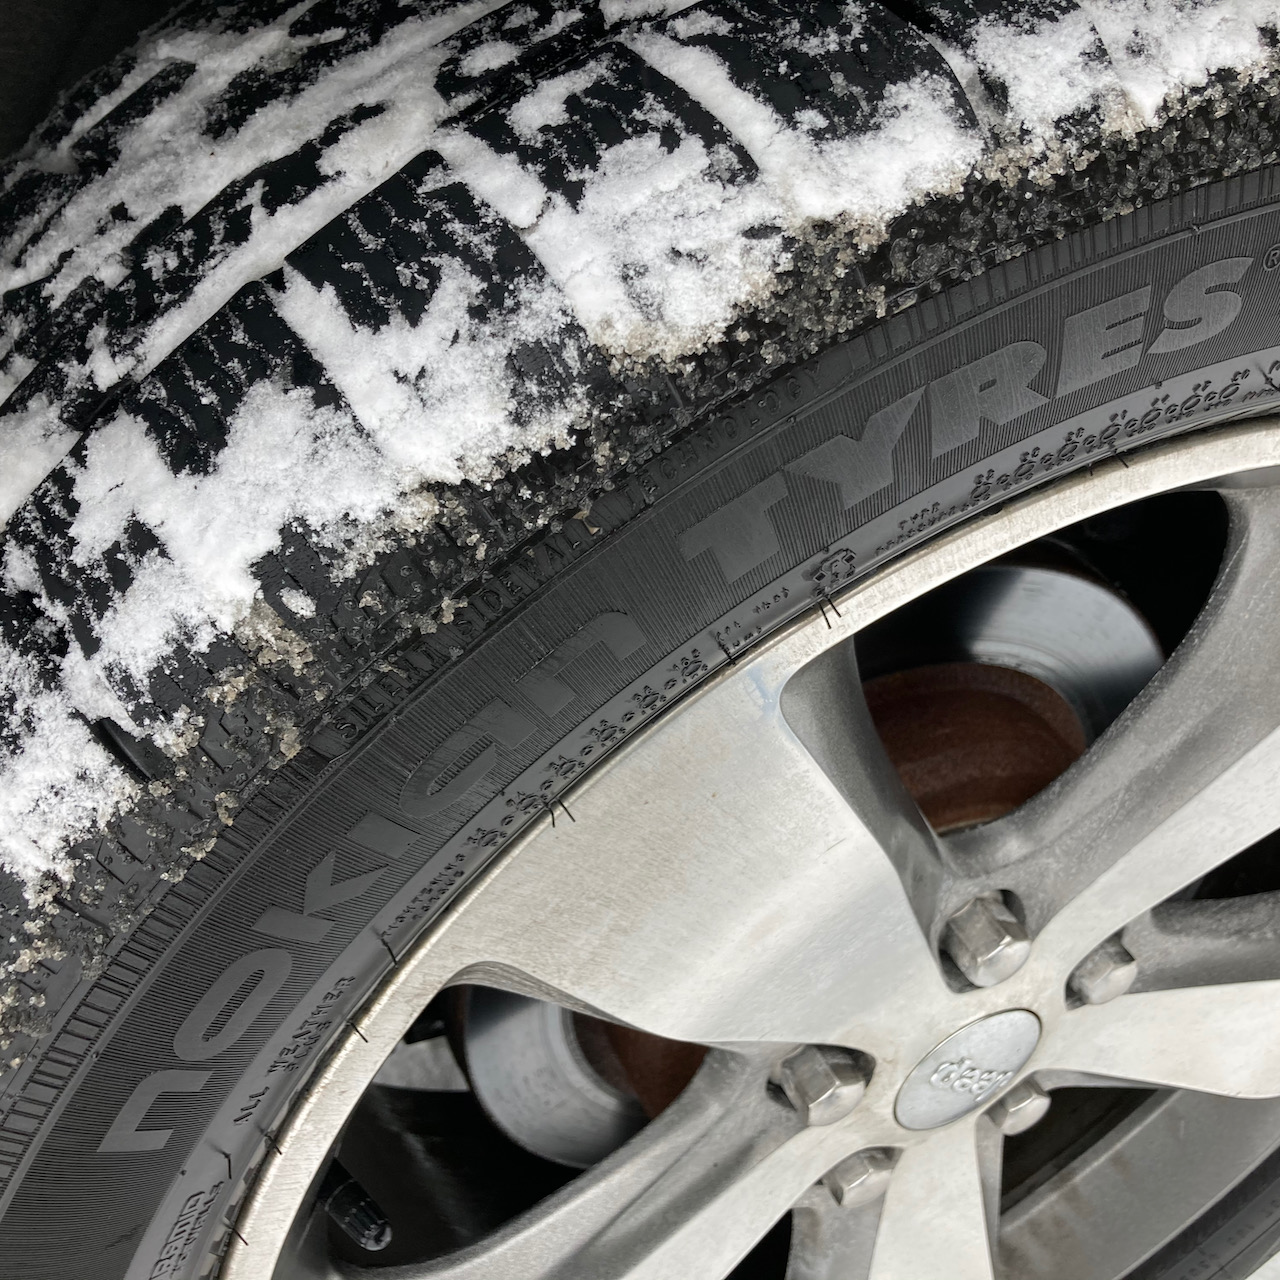 View of snow-covered Nokian WR G4 SUV tires.